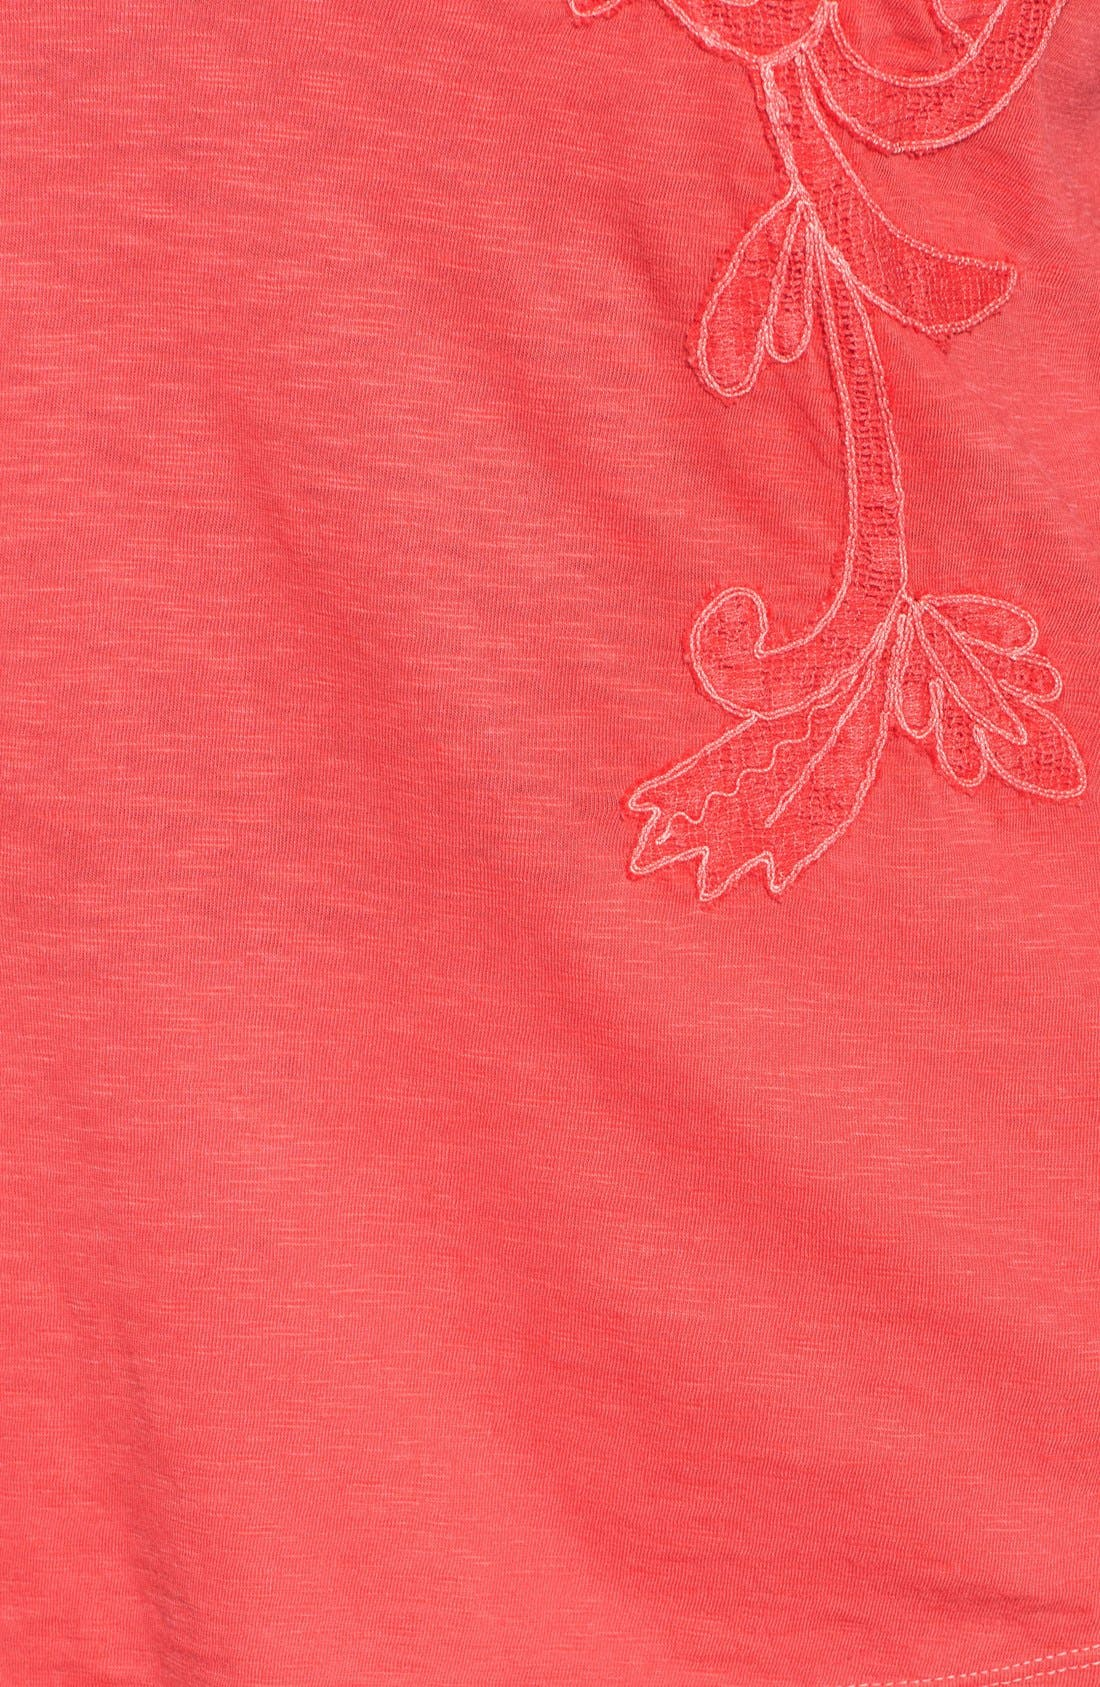 Alternate Image 3  - Lucky Brand Overdyed Soutache Tee (Plus Size)